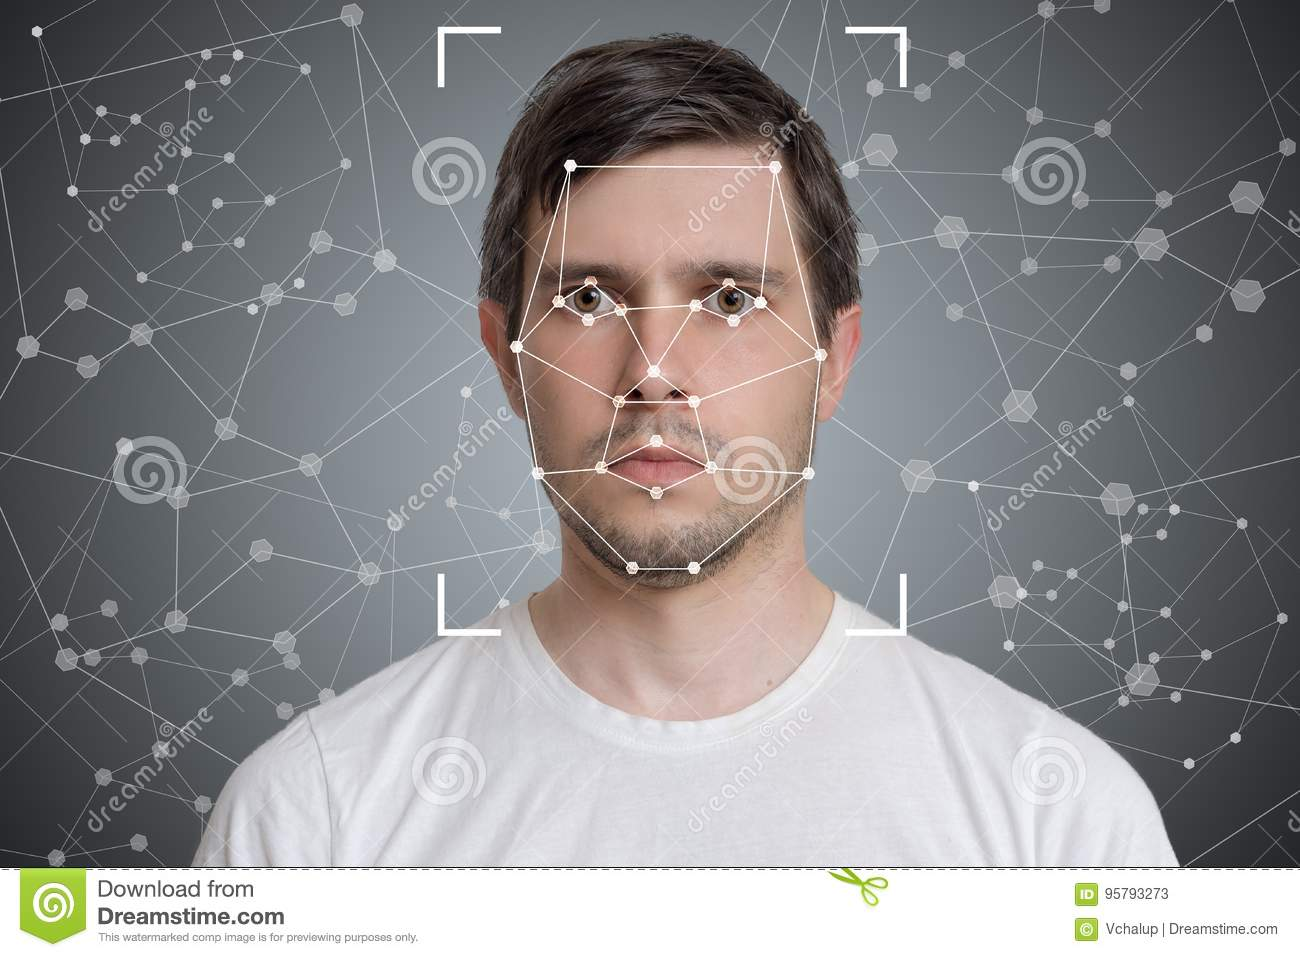 Face detection and recognition of man. Computer vision and artificial intelligence concept